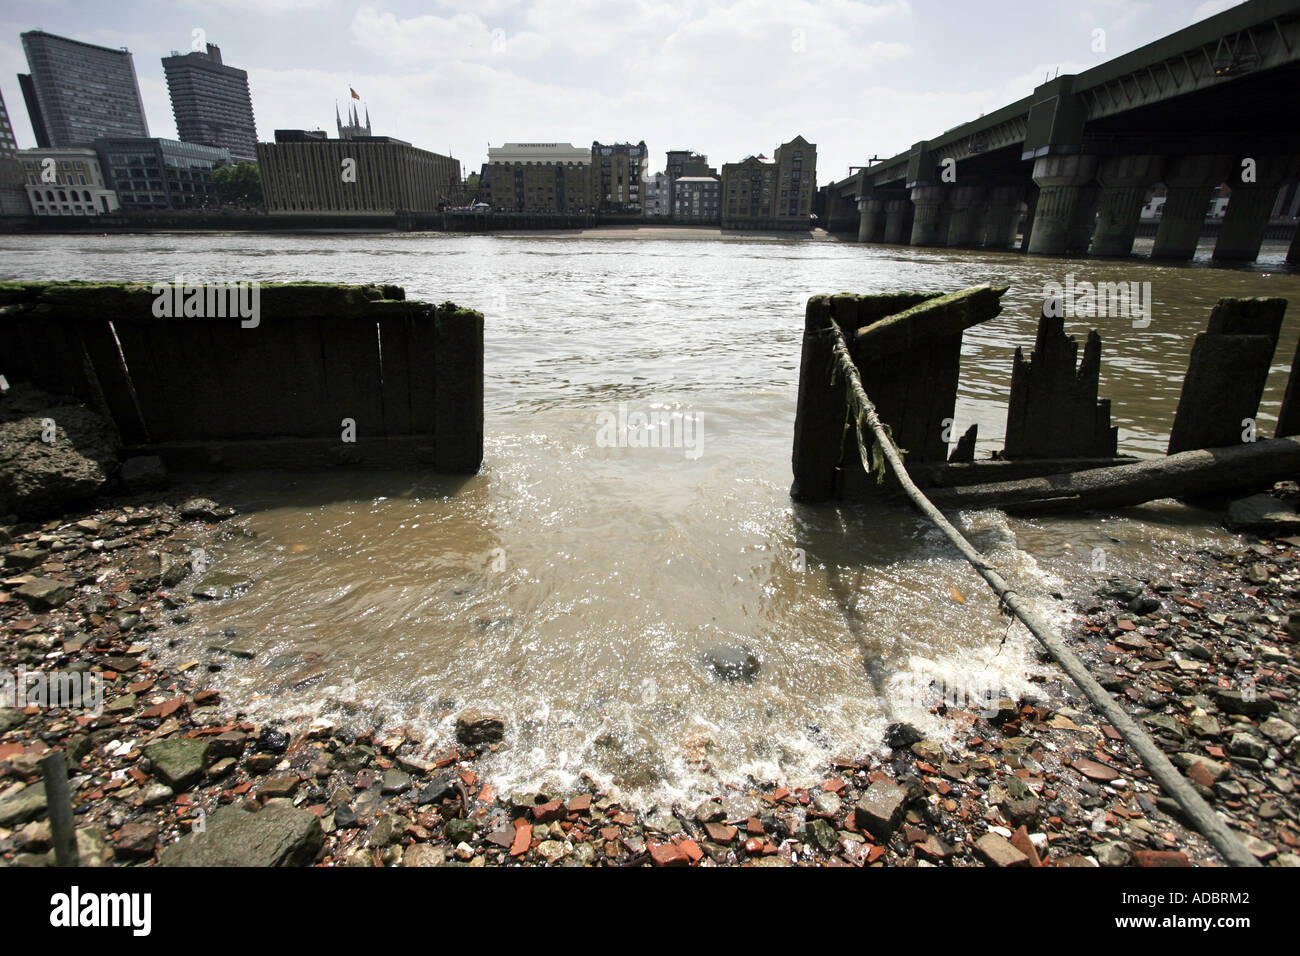 The River Thames at Low Tide in London England Stock Photo